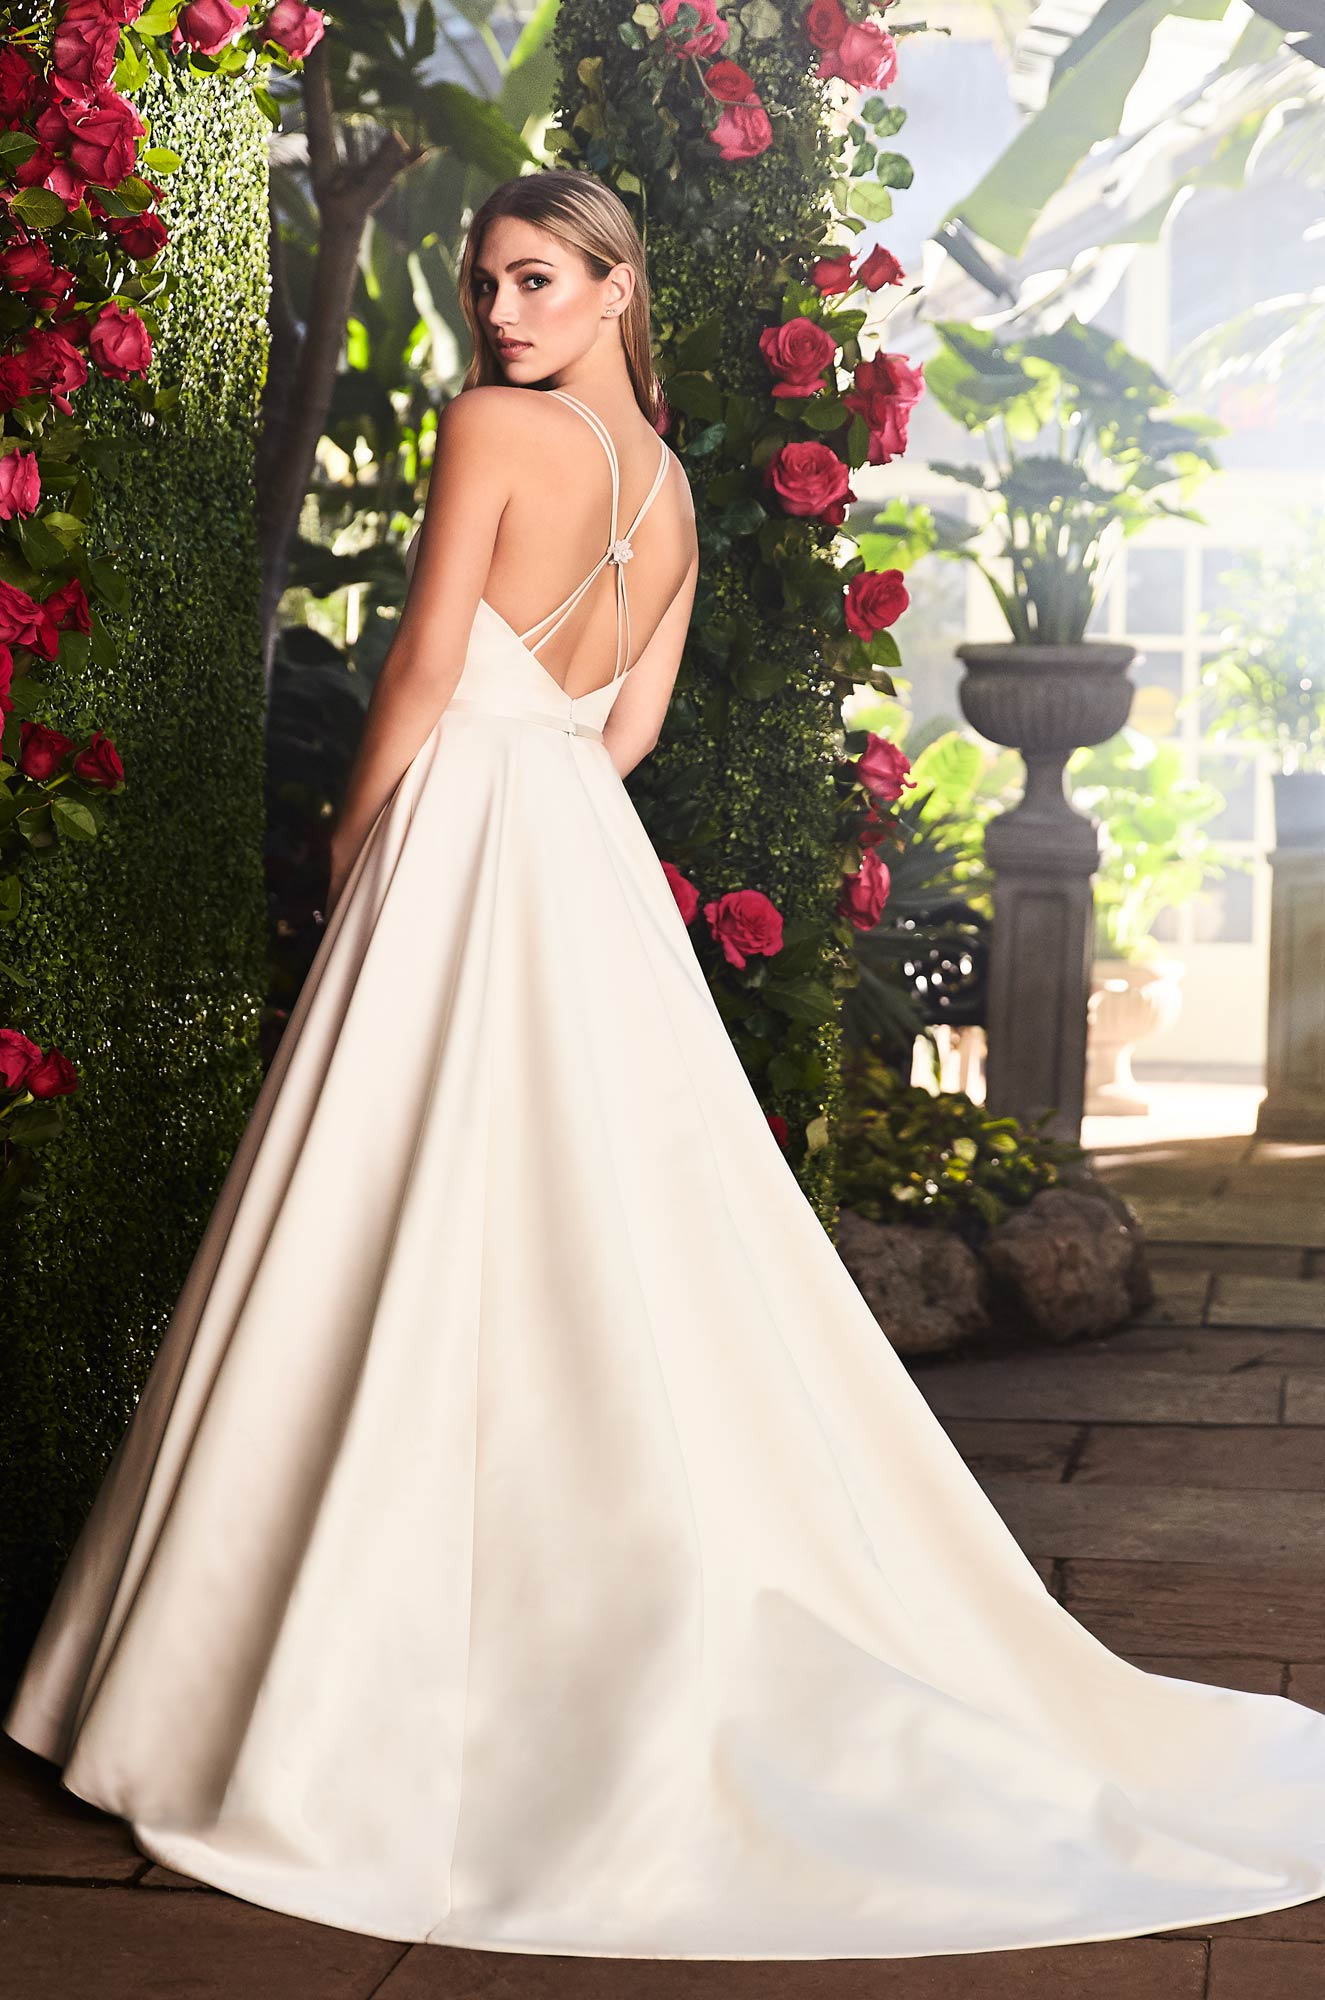 Elegant Satin Ball Gown Wedding Dress – Style #2257 | Mikaella Bridal